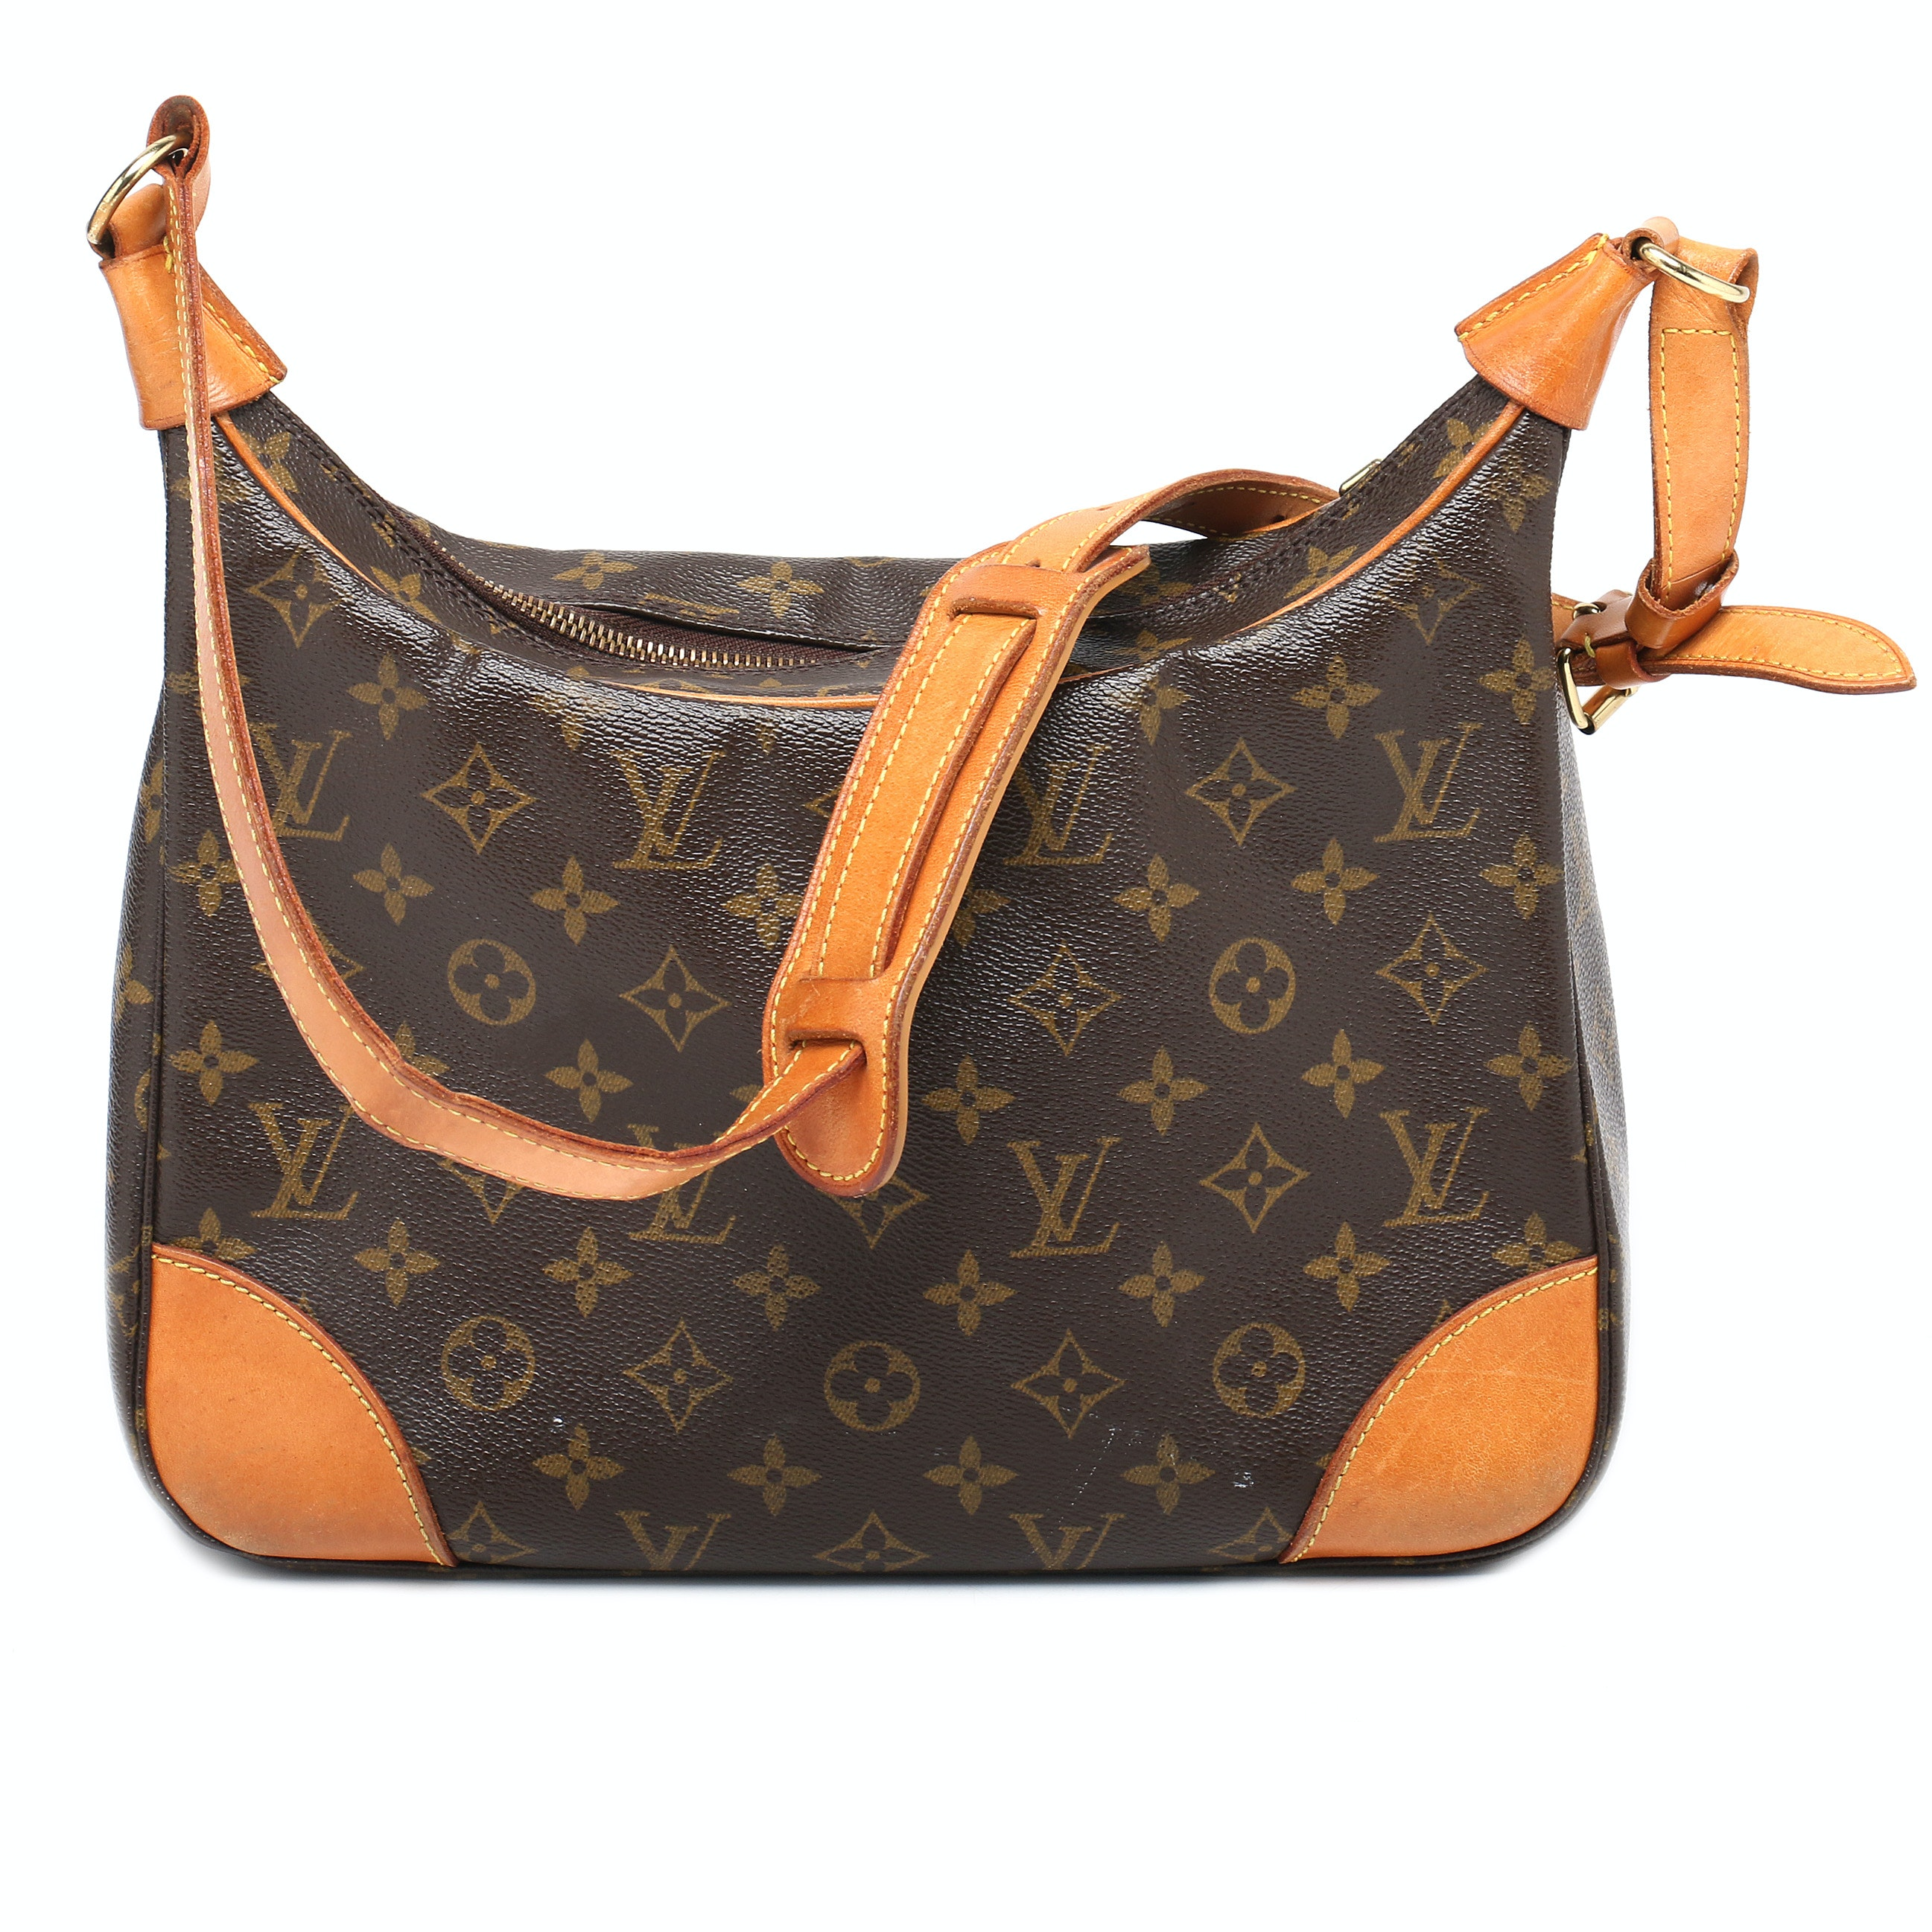 "Louis Vuitton ""Boulogne"" Handbag"